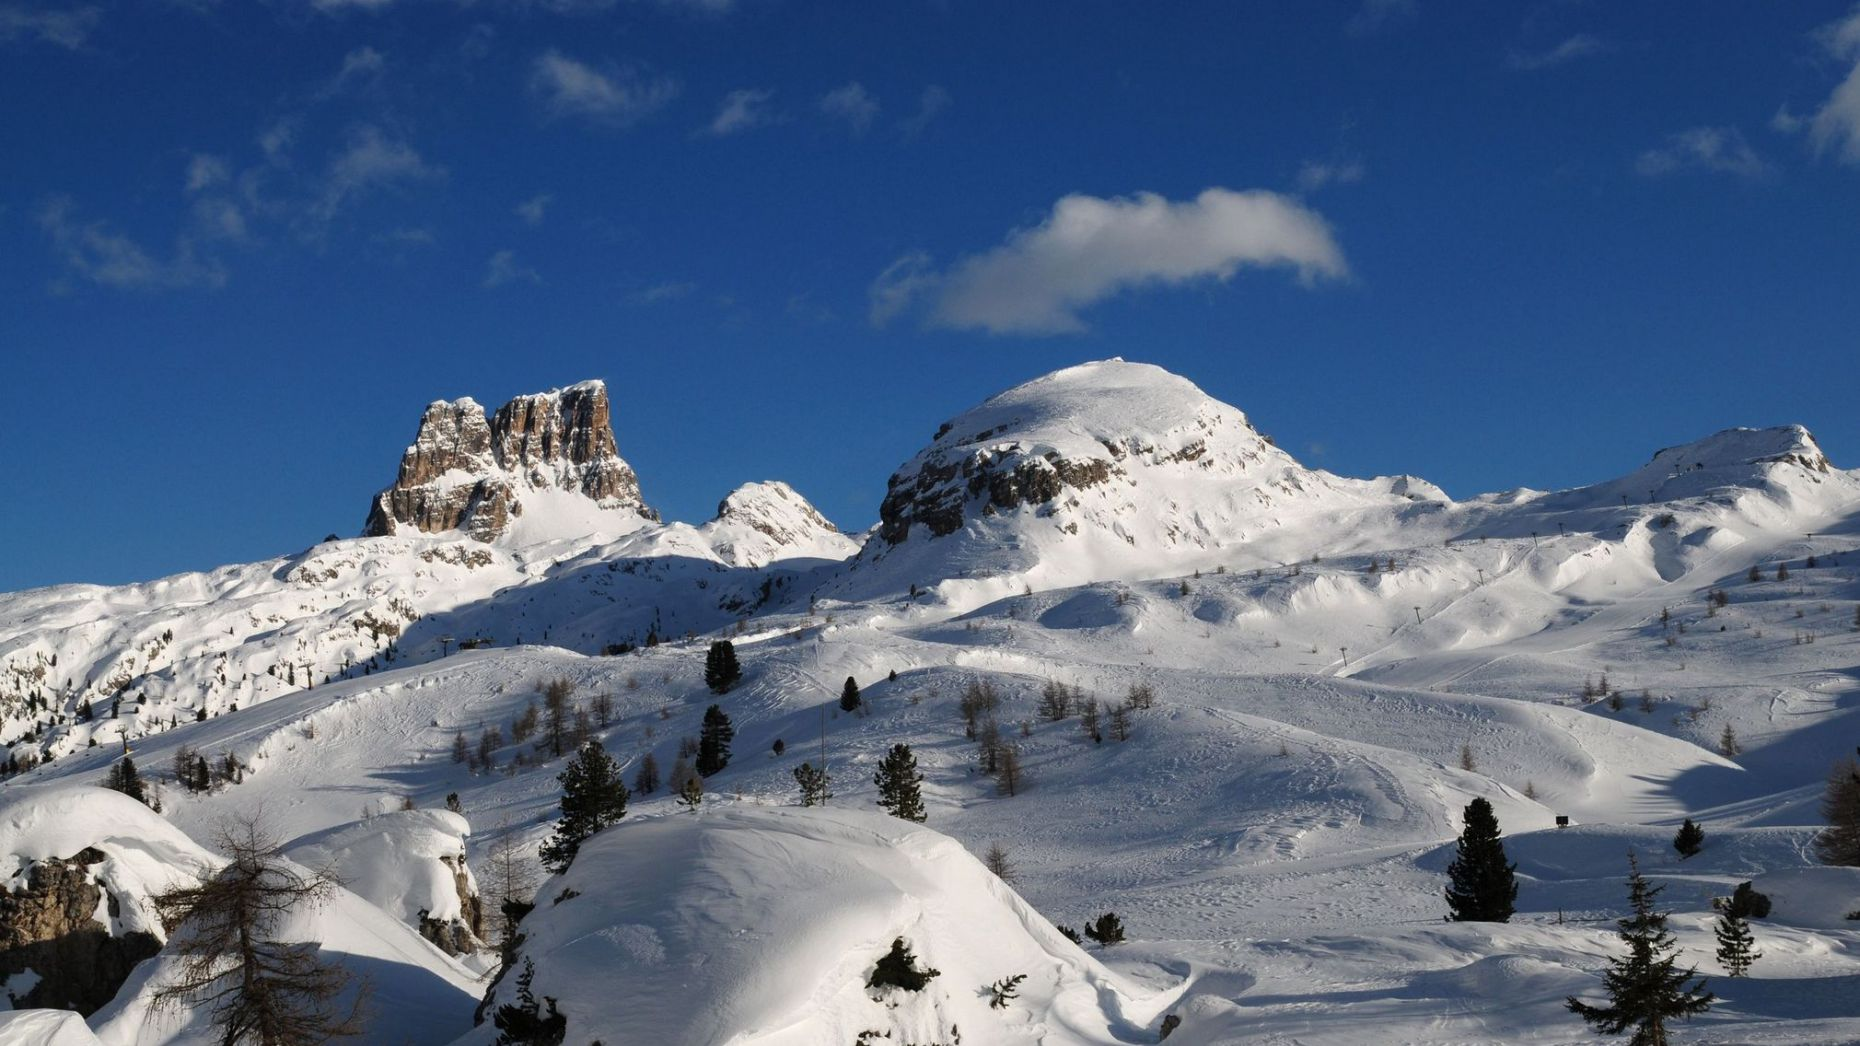 Image: Location in San Cassiano